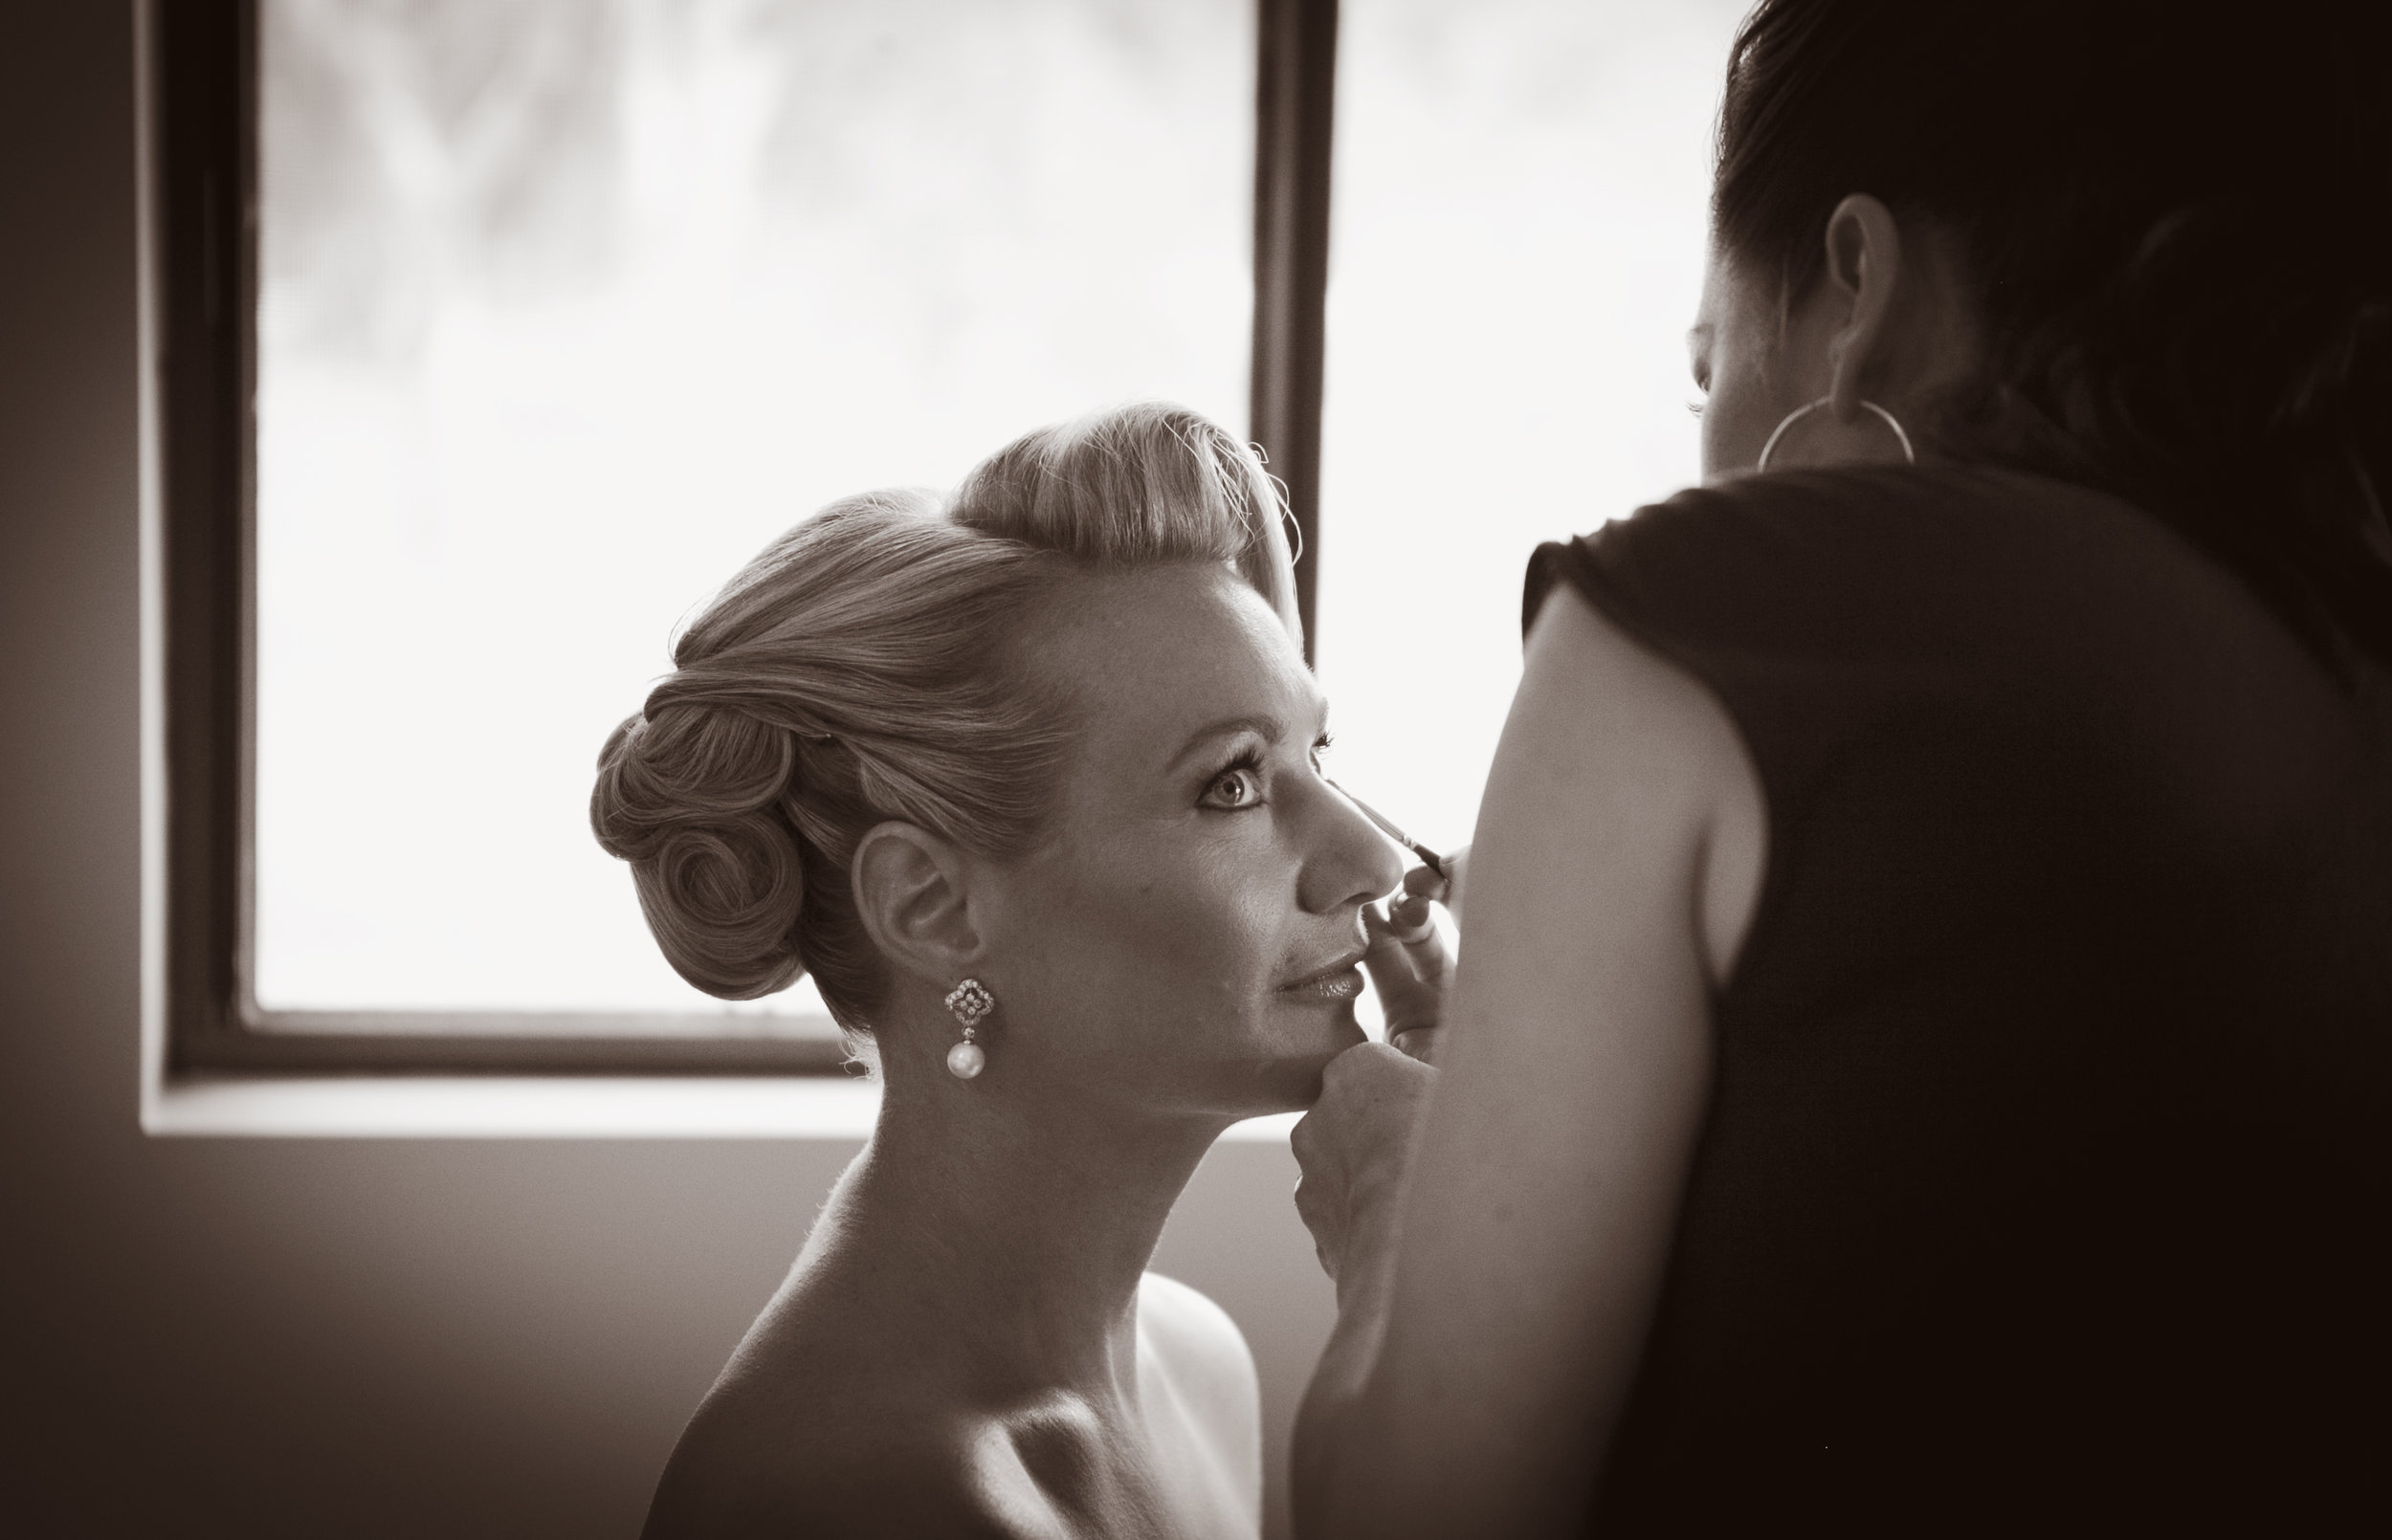 What preparation should I do to my skin prior to my wedding day? - The smoother your skin, the better result on your wedding day. A gentle skin exfoliate should be used to remove any old skin cells and smooth out imperfections. Exfoliates can be used up to 2 times per week. I can recommend skin treatments available for you @ salons.